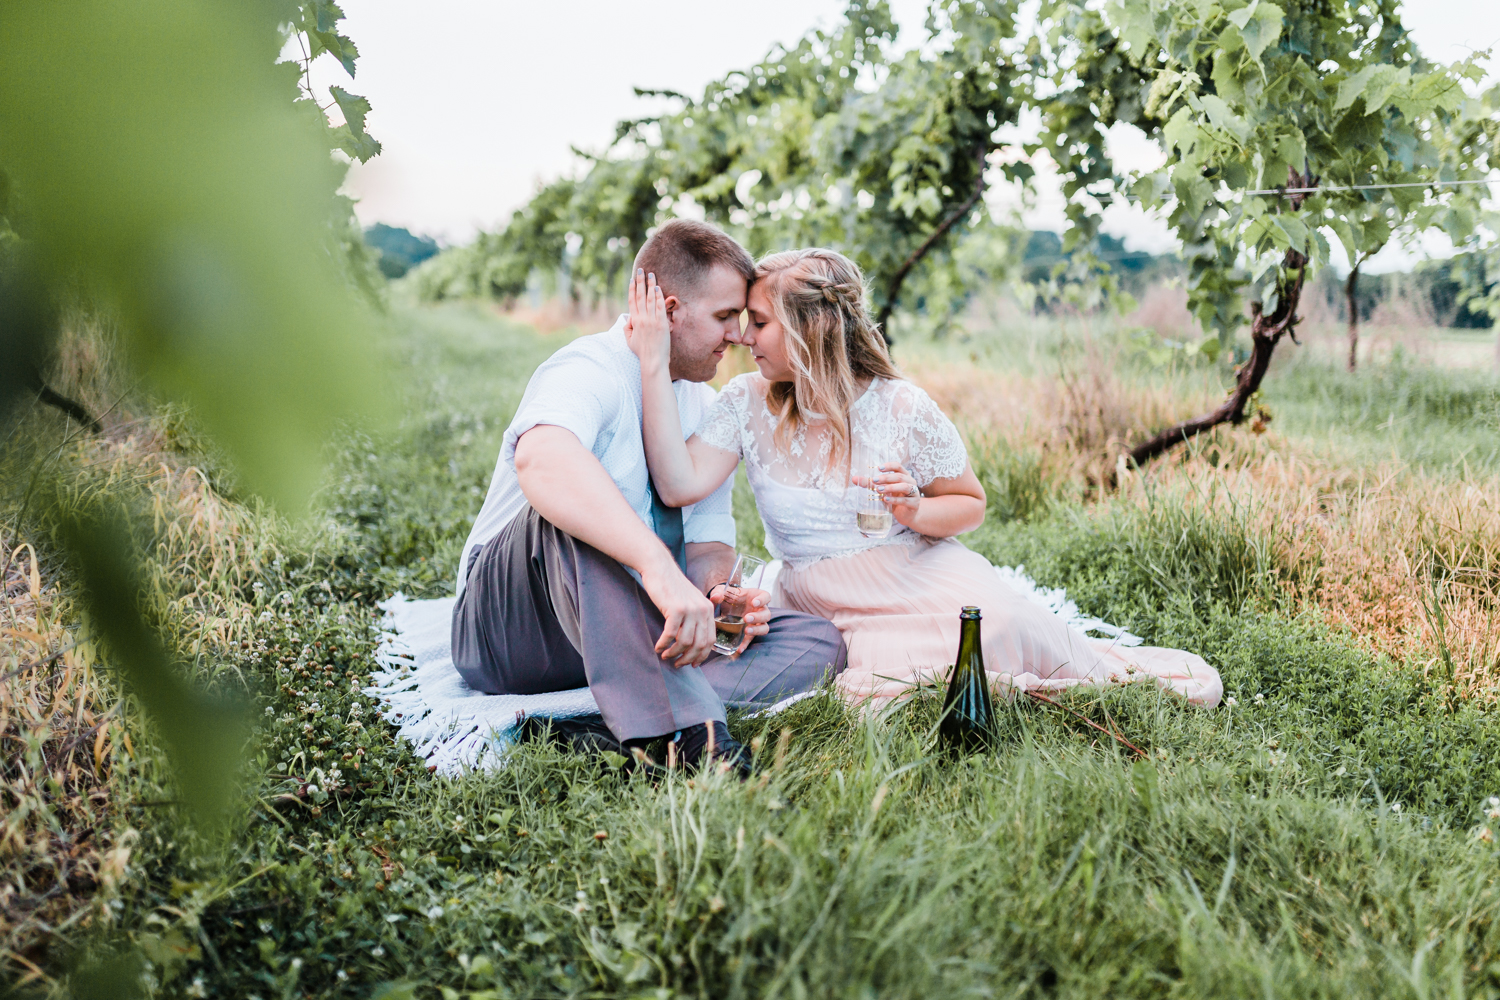 couple snuggled together on picnic blanket with champagne